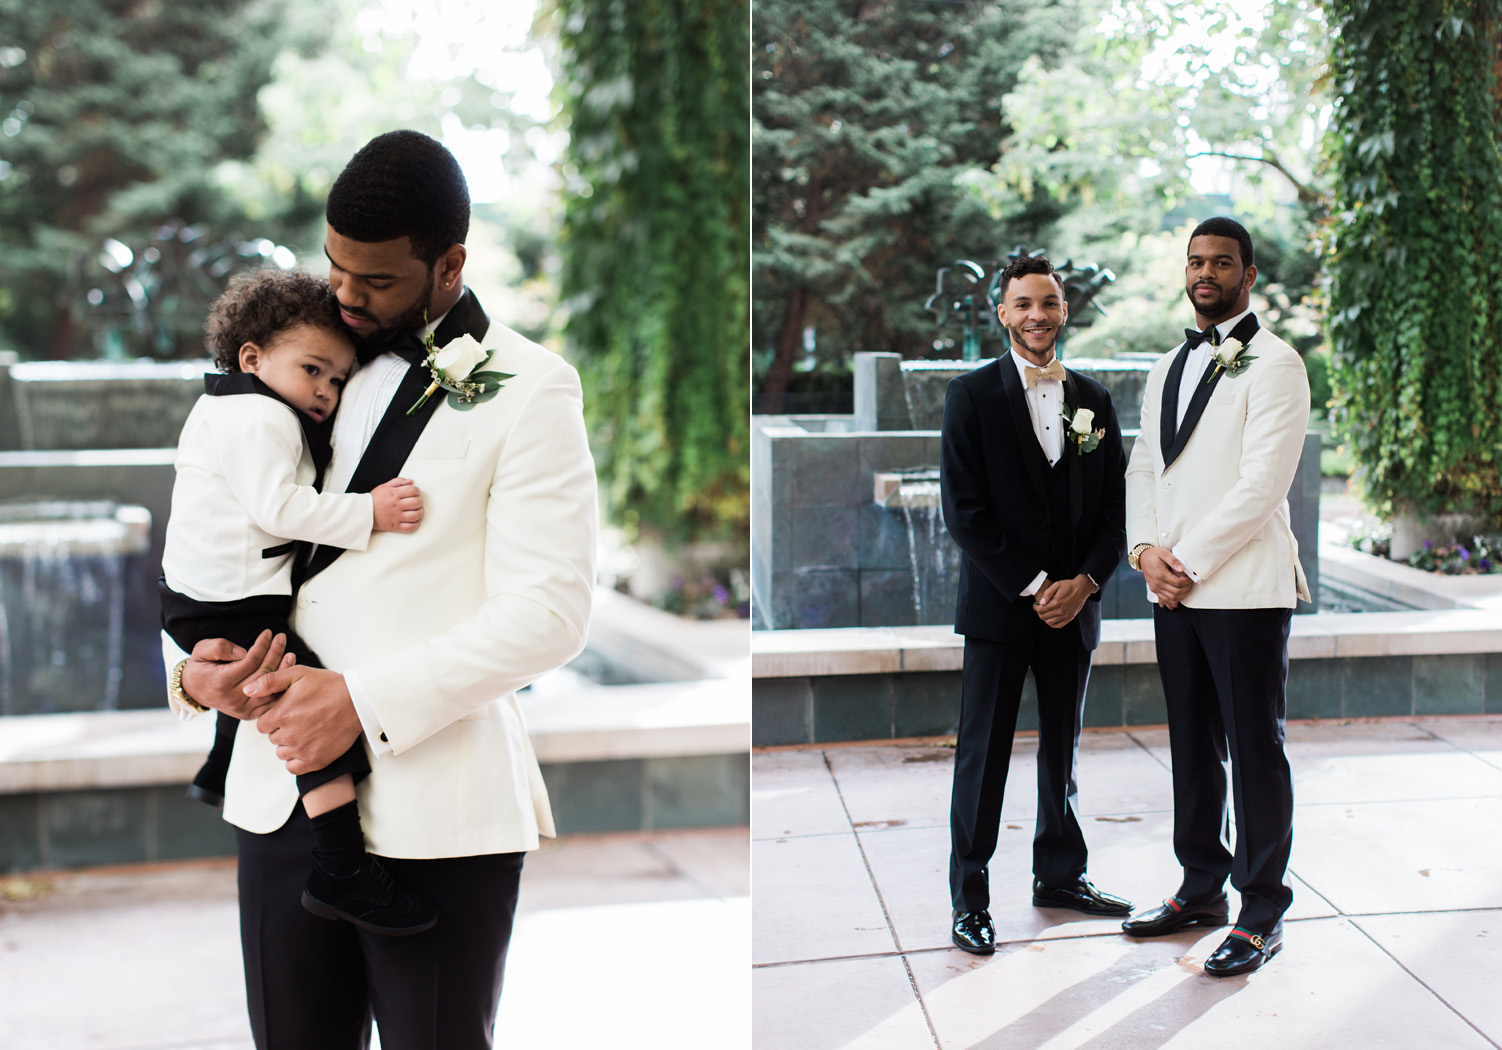 black tie groom wedding photography bellevue club.jpg